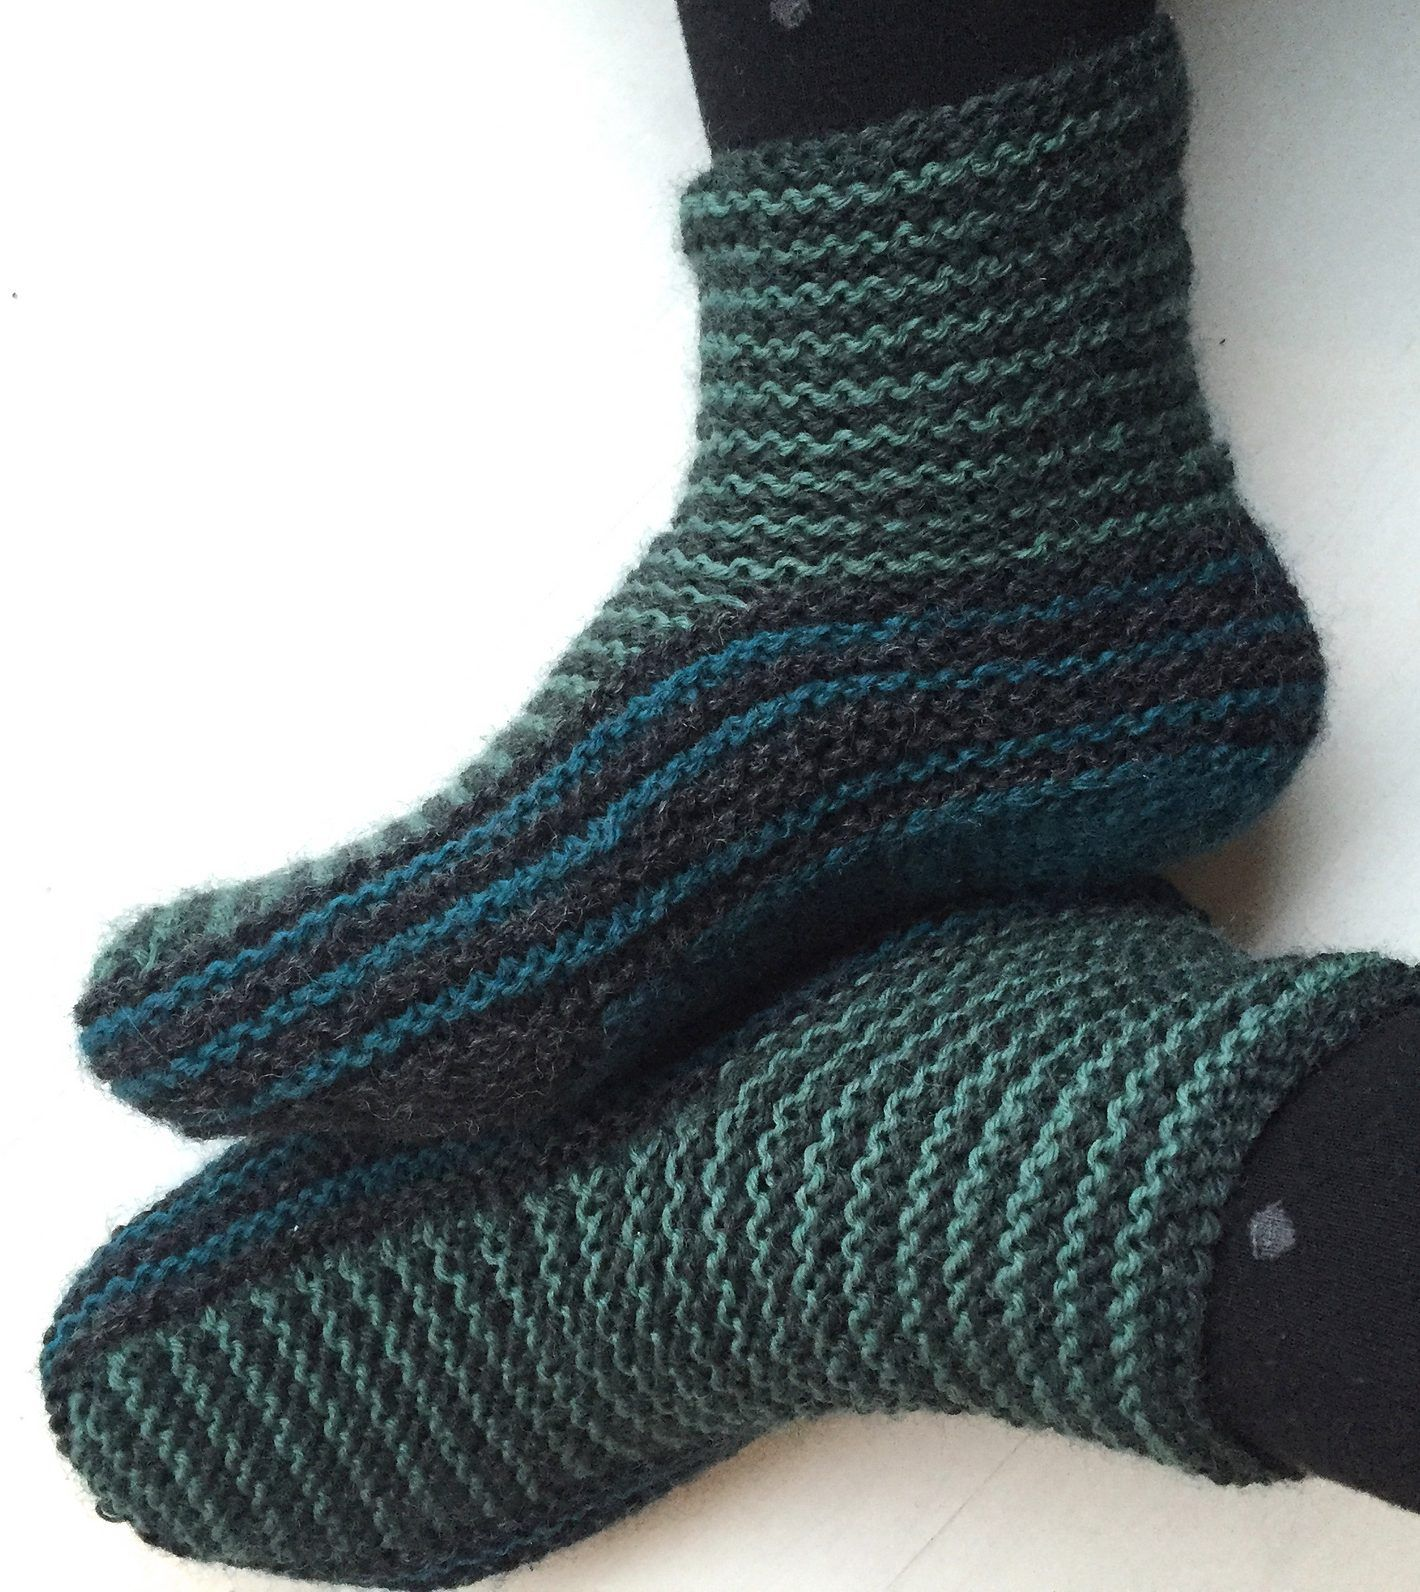 Free Knitting Pattern for Grown-Up Garter Booties - Maria Sus designed these ...